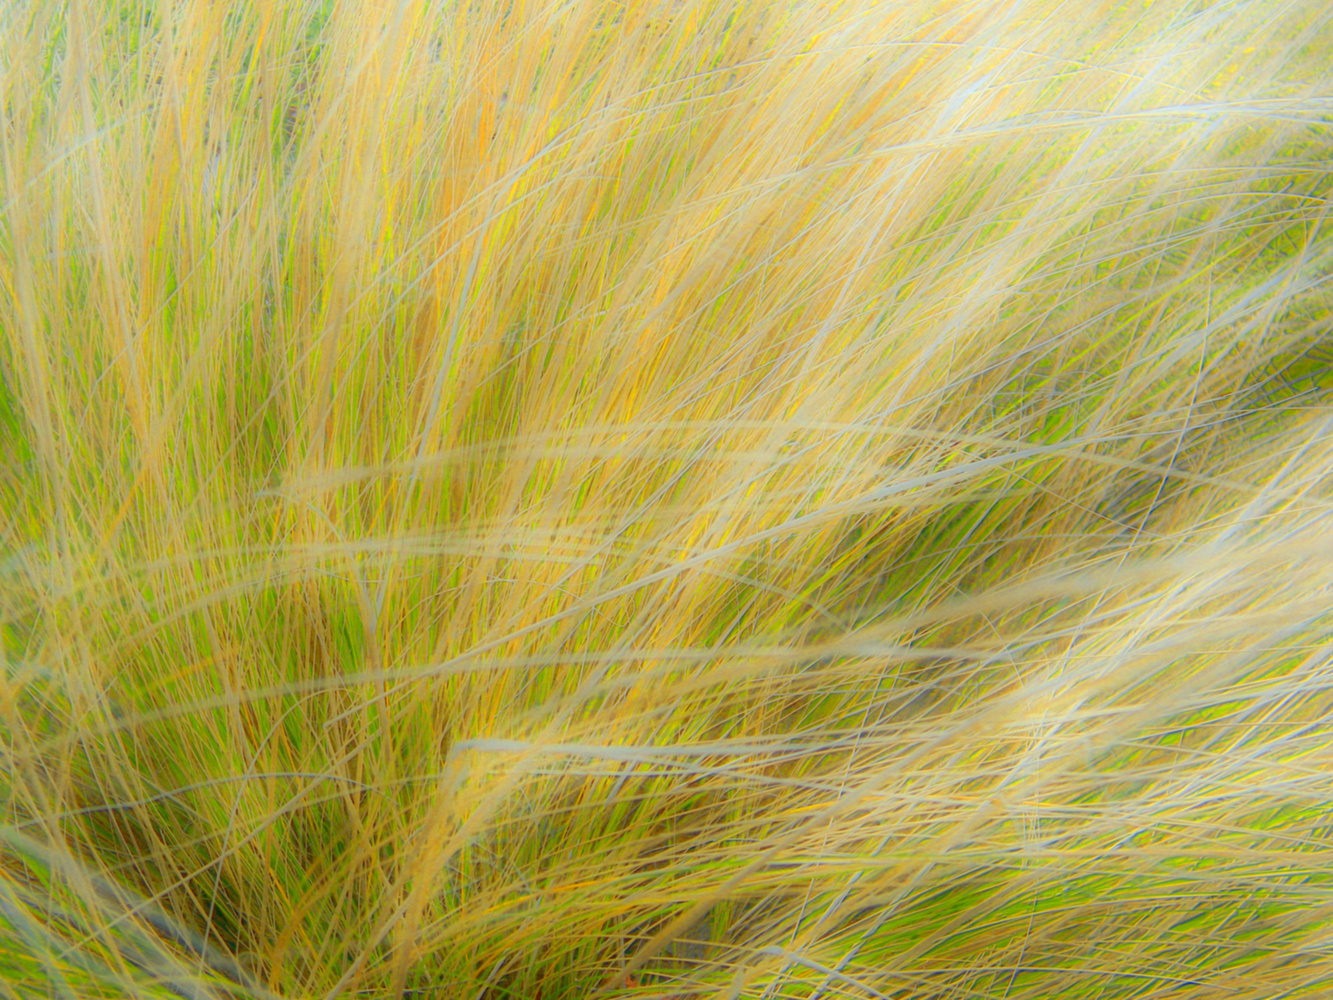 Ornamental grass in the winter. by Chris Snyder